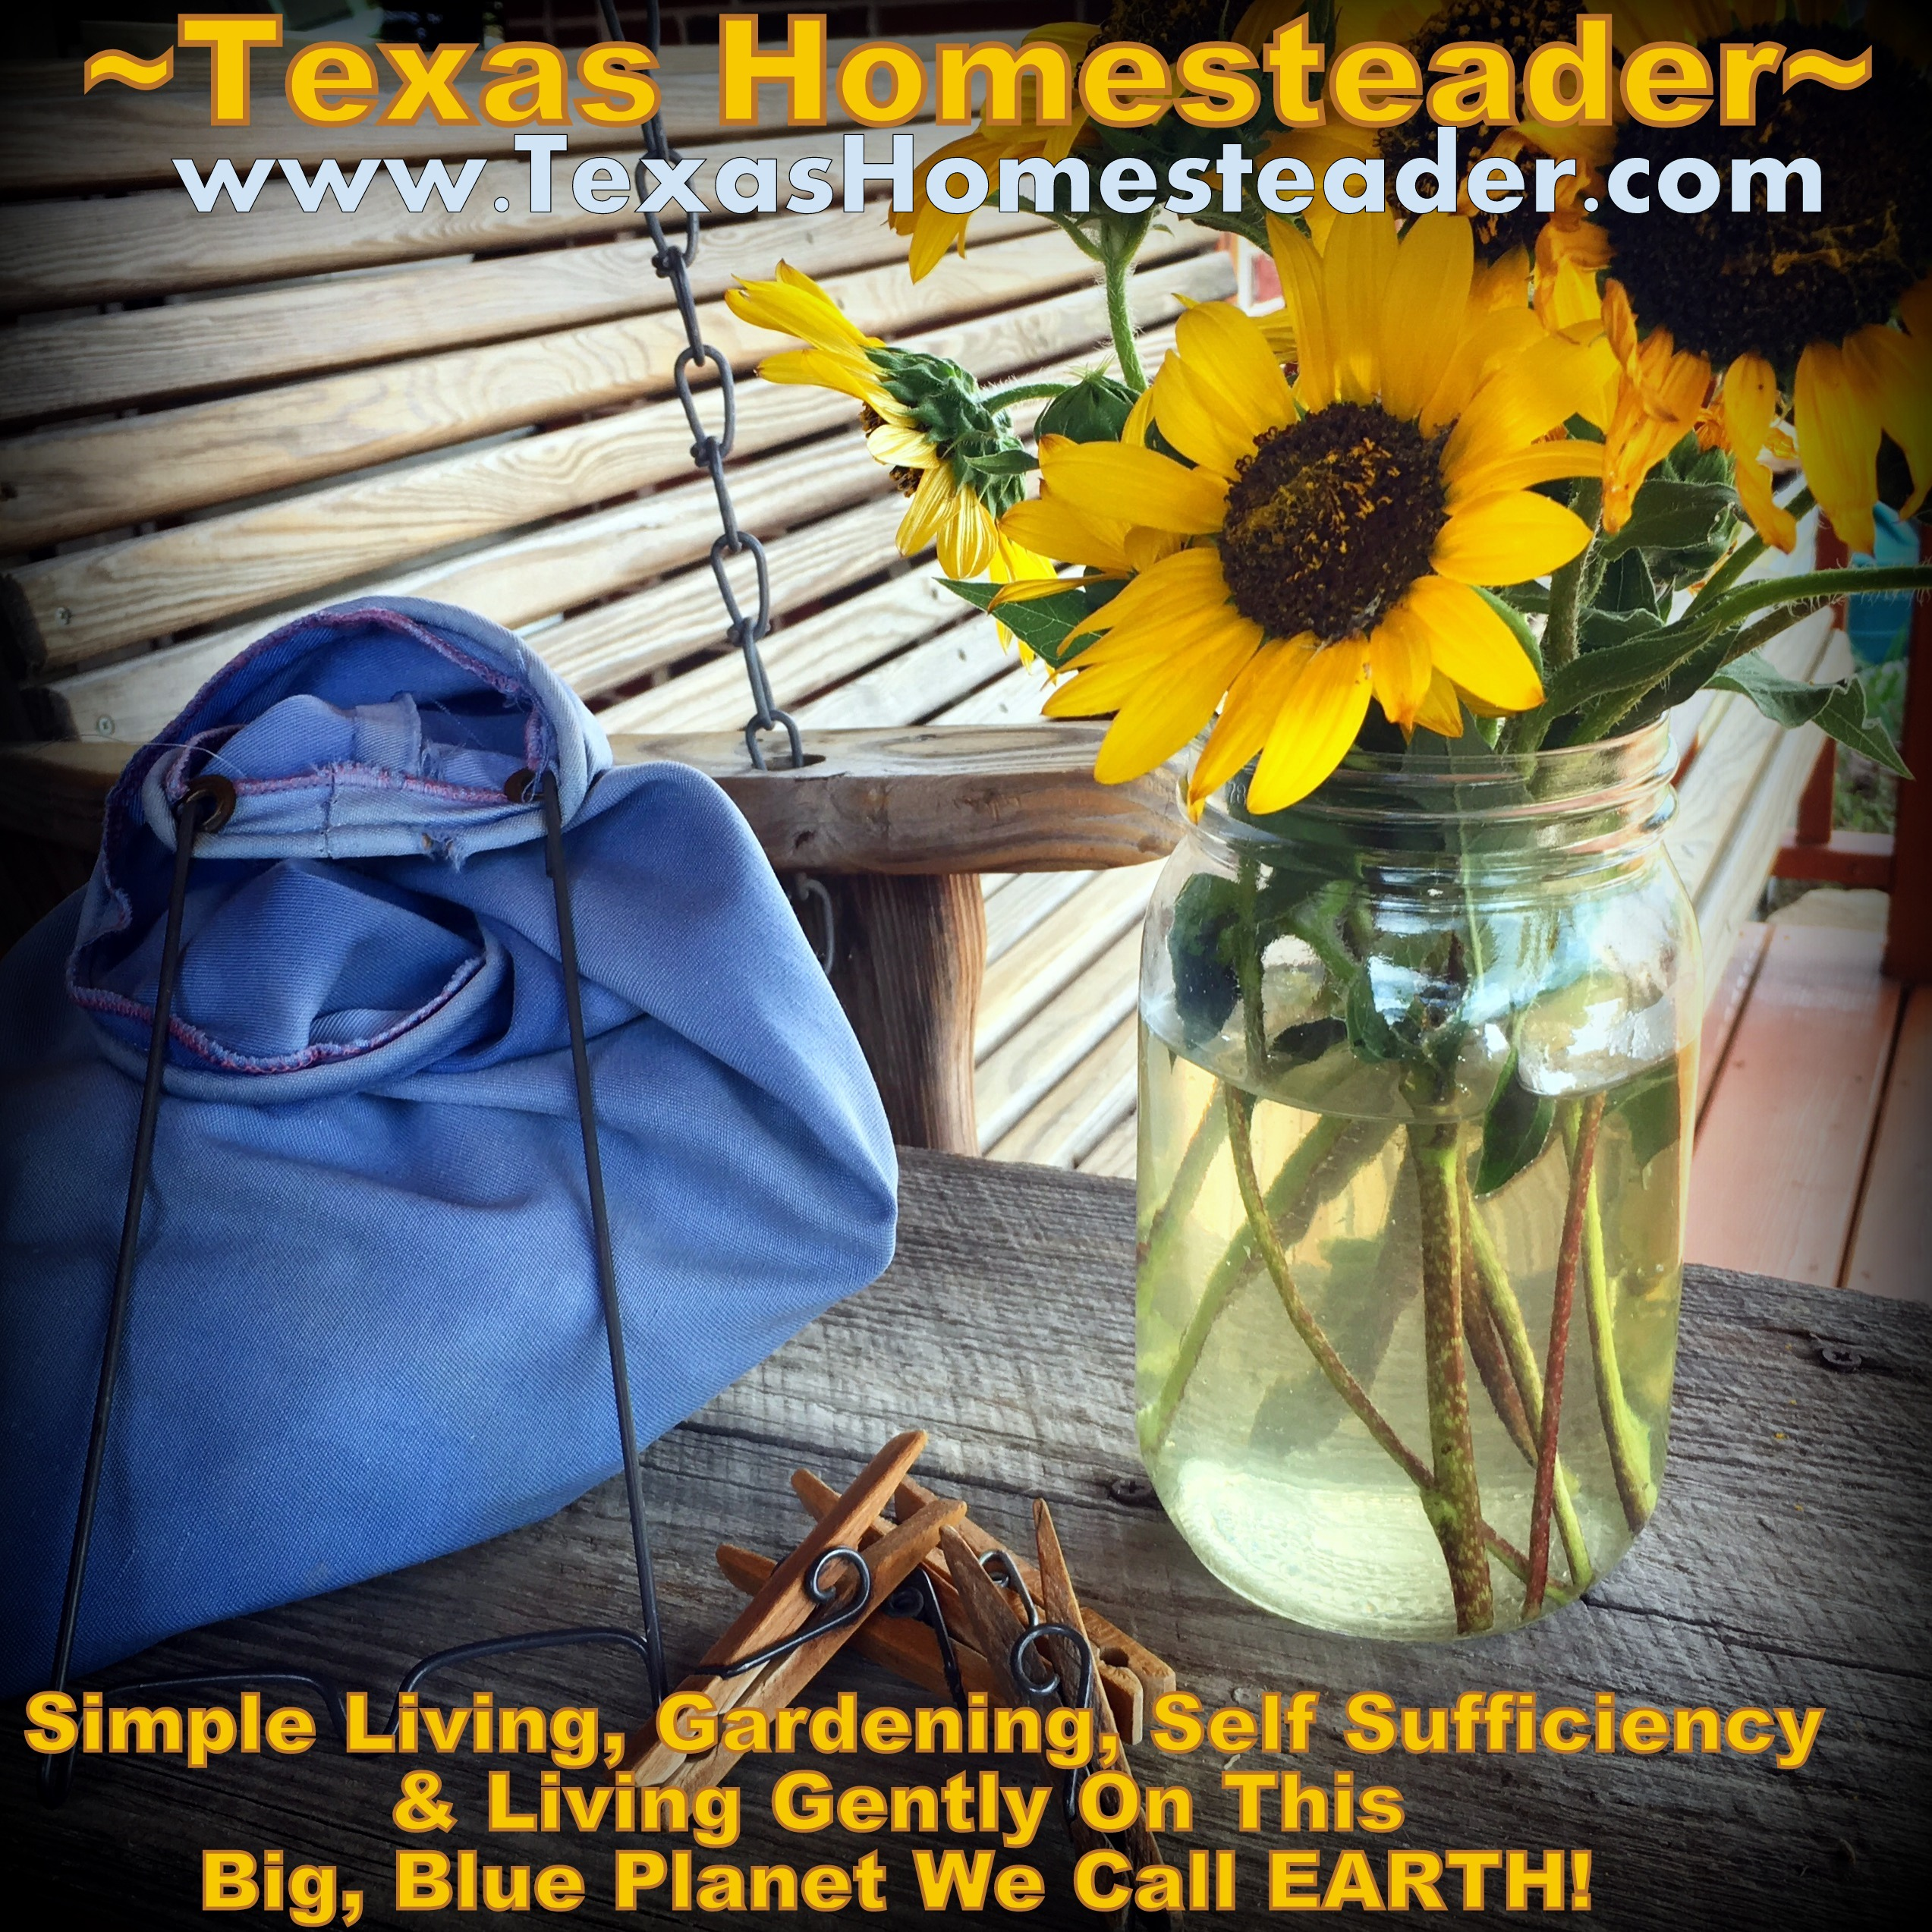 Easiest Self-Sufficiency Steps. Many are trying to provide for their families these days. Come see how to save money on groceries, necessities, and make things yourself #TexasHomesteader